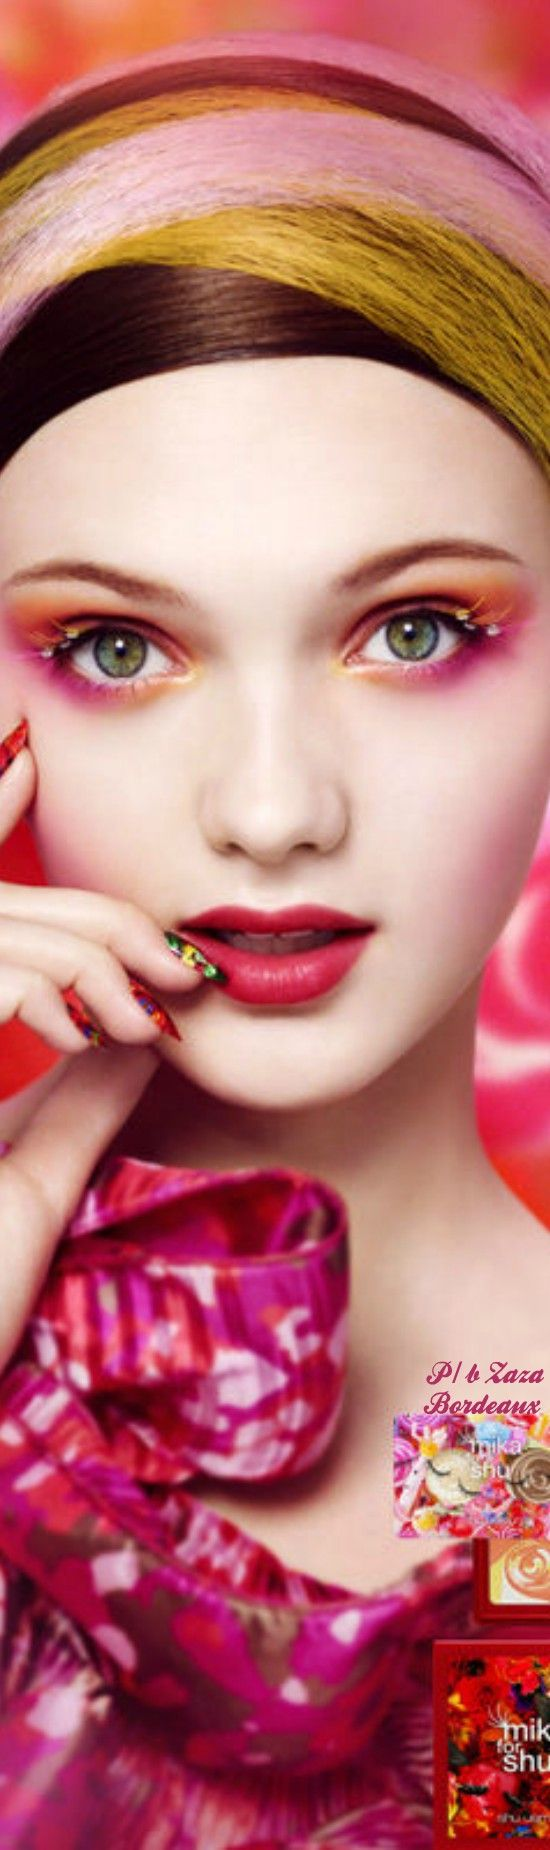 2486 best Make up images on Pinterest | Beauty products, Beautiful ...